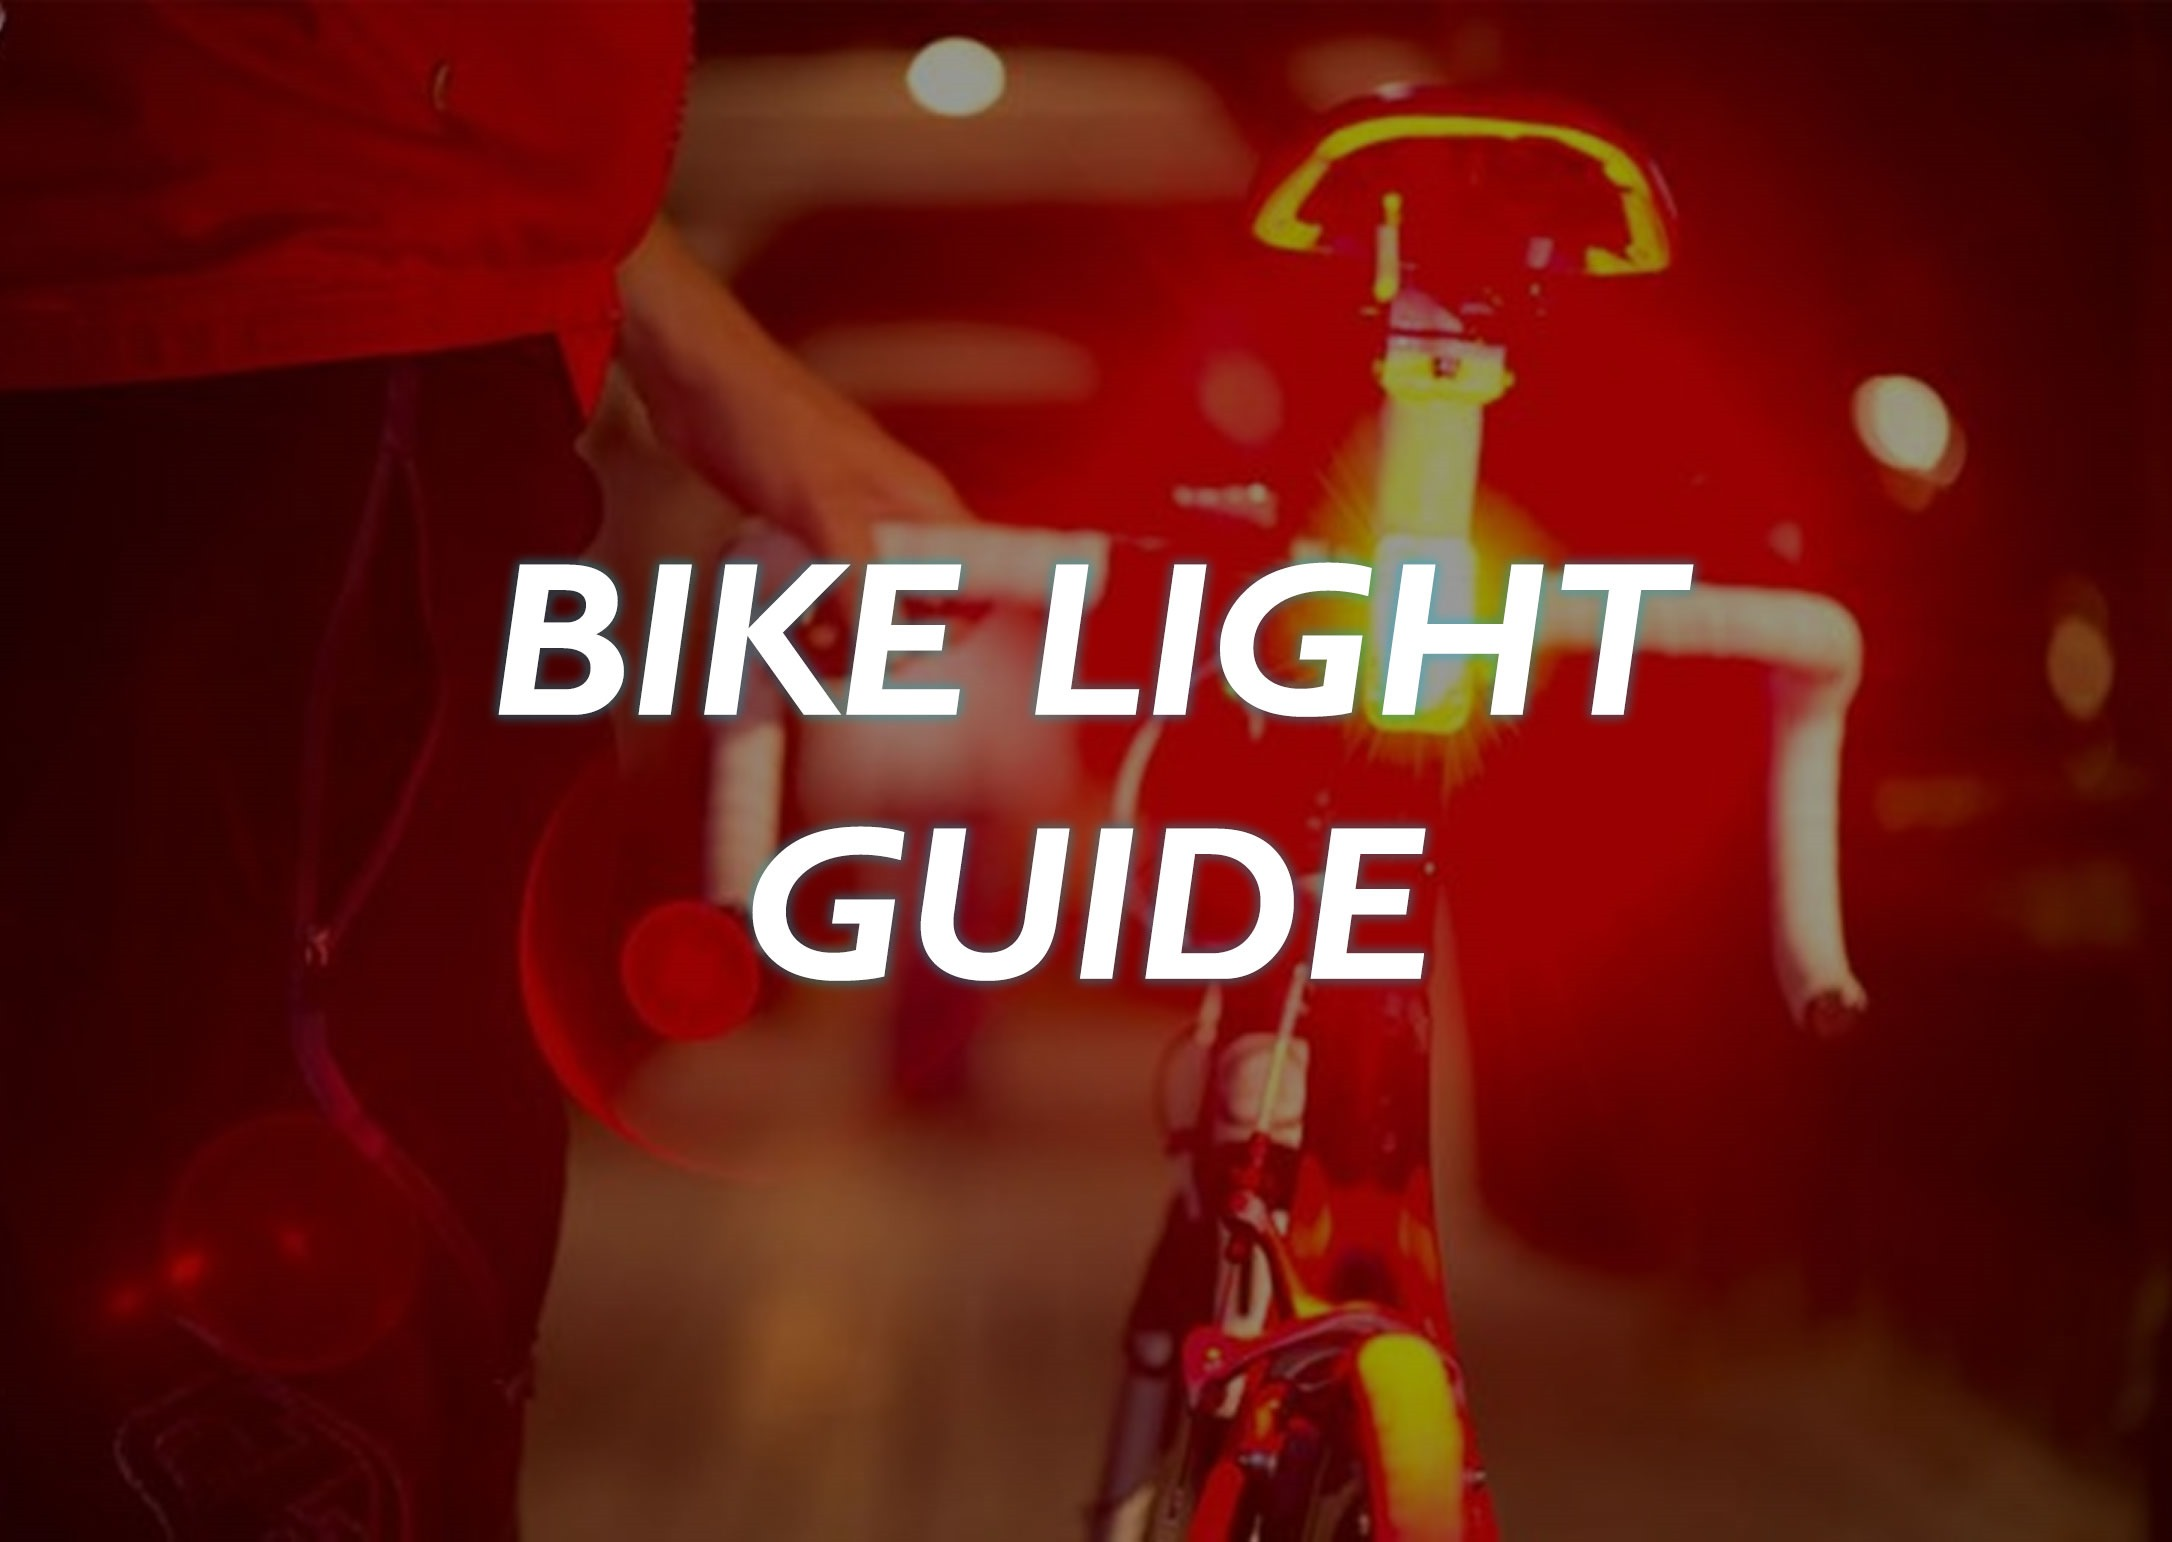 bike-light-guide-tile